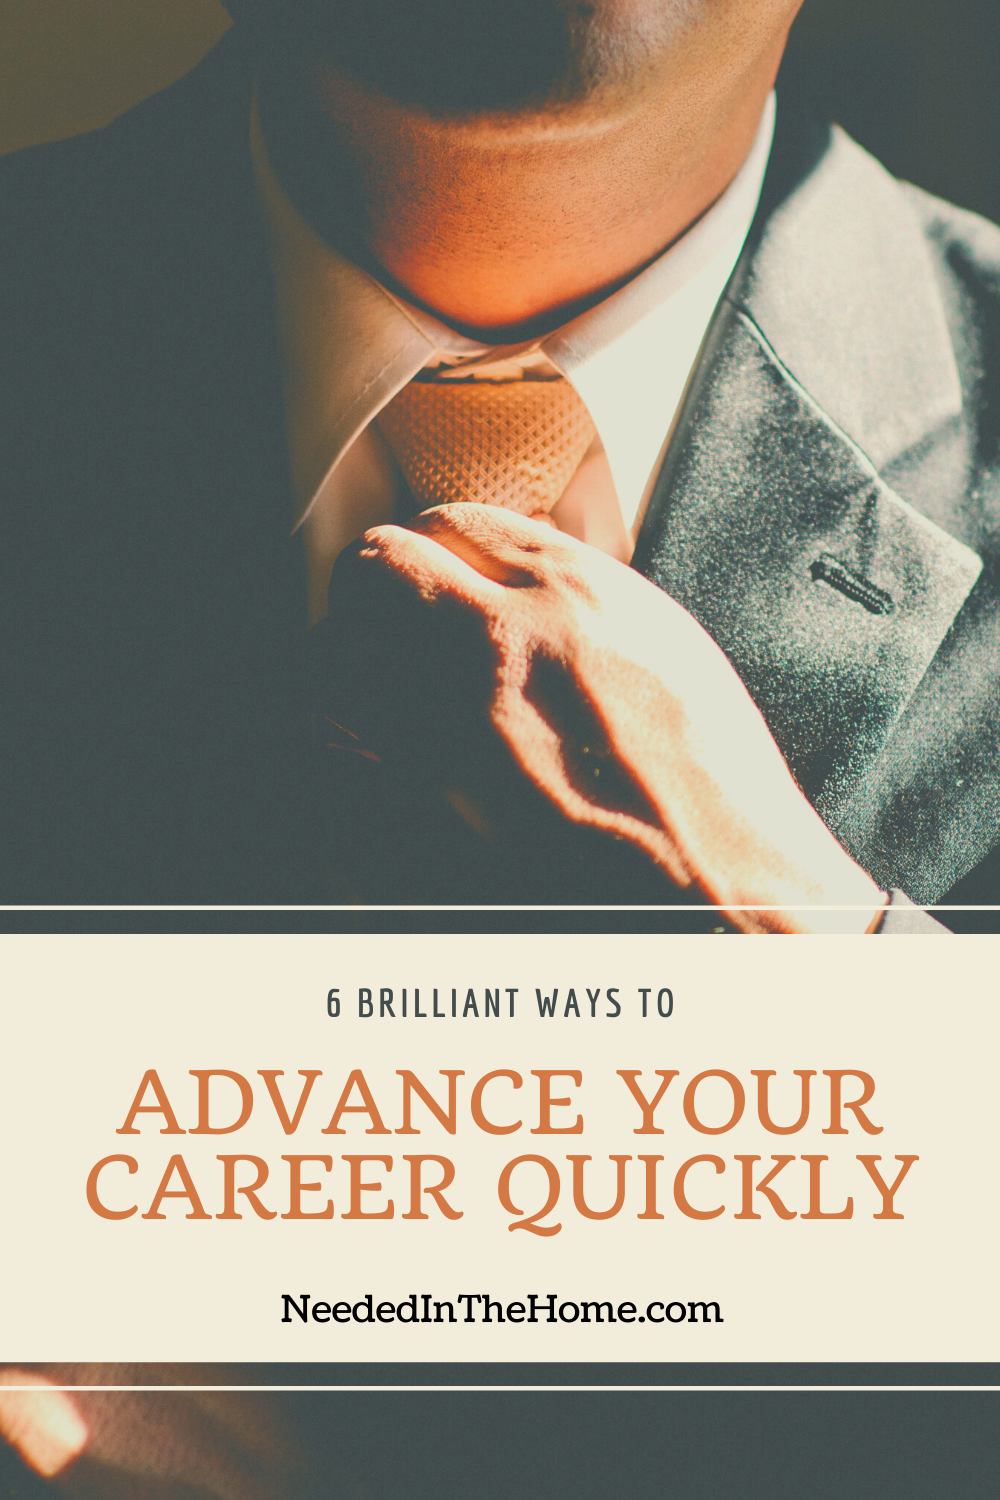 6 Brilliant Ways To Advance Your Career Quickly man adjusting tie wearing suit neededinthehome